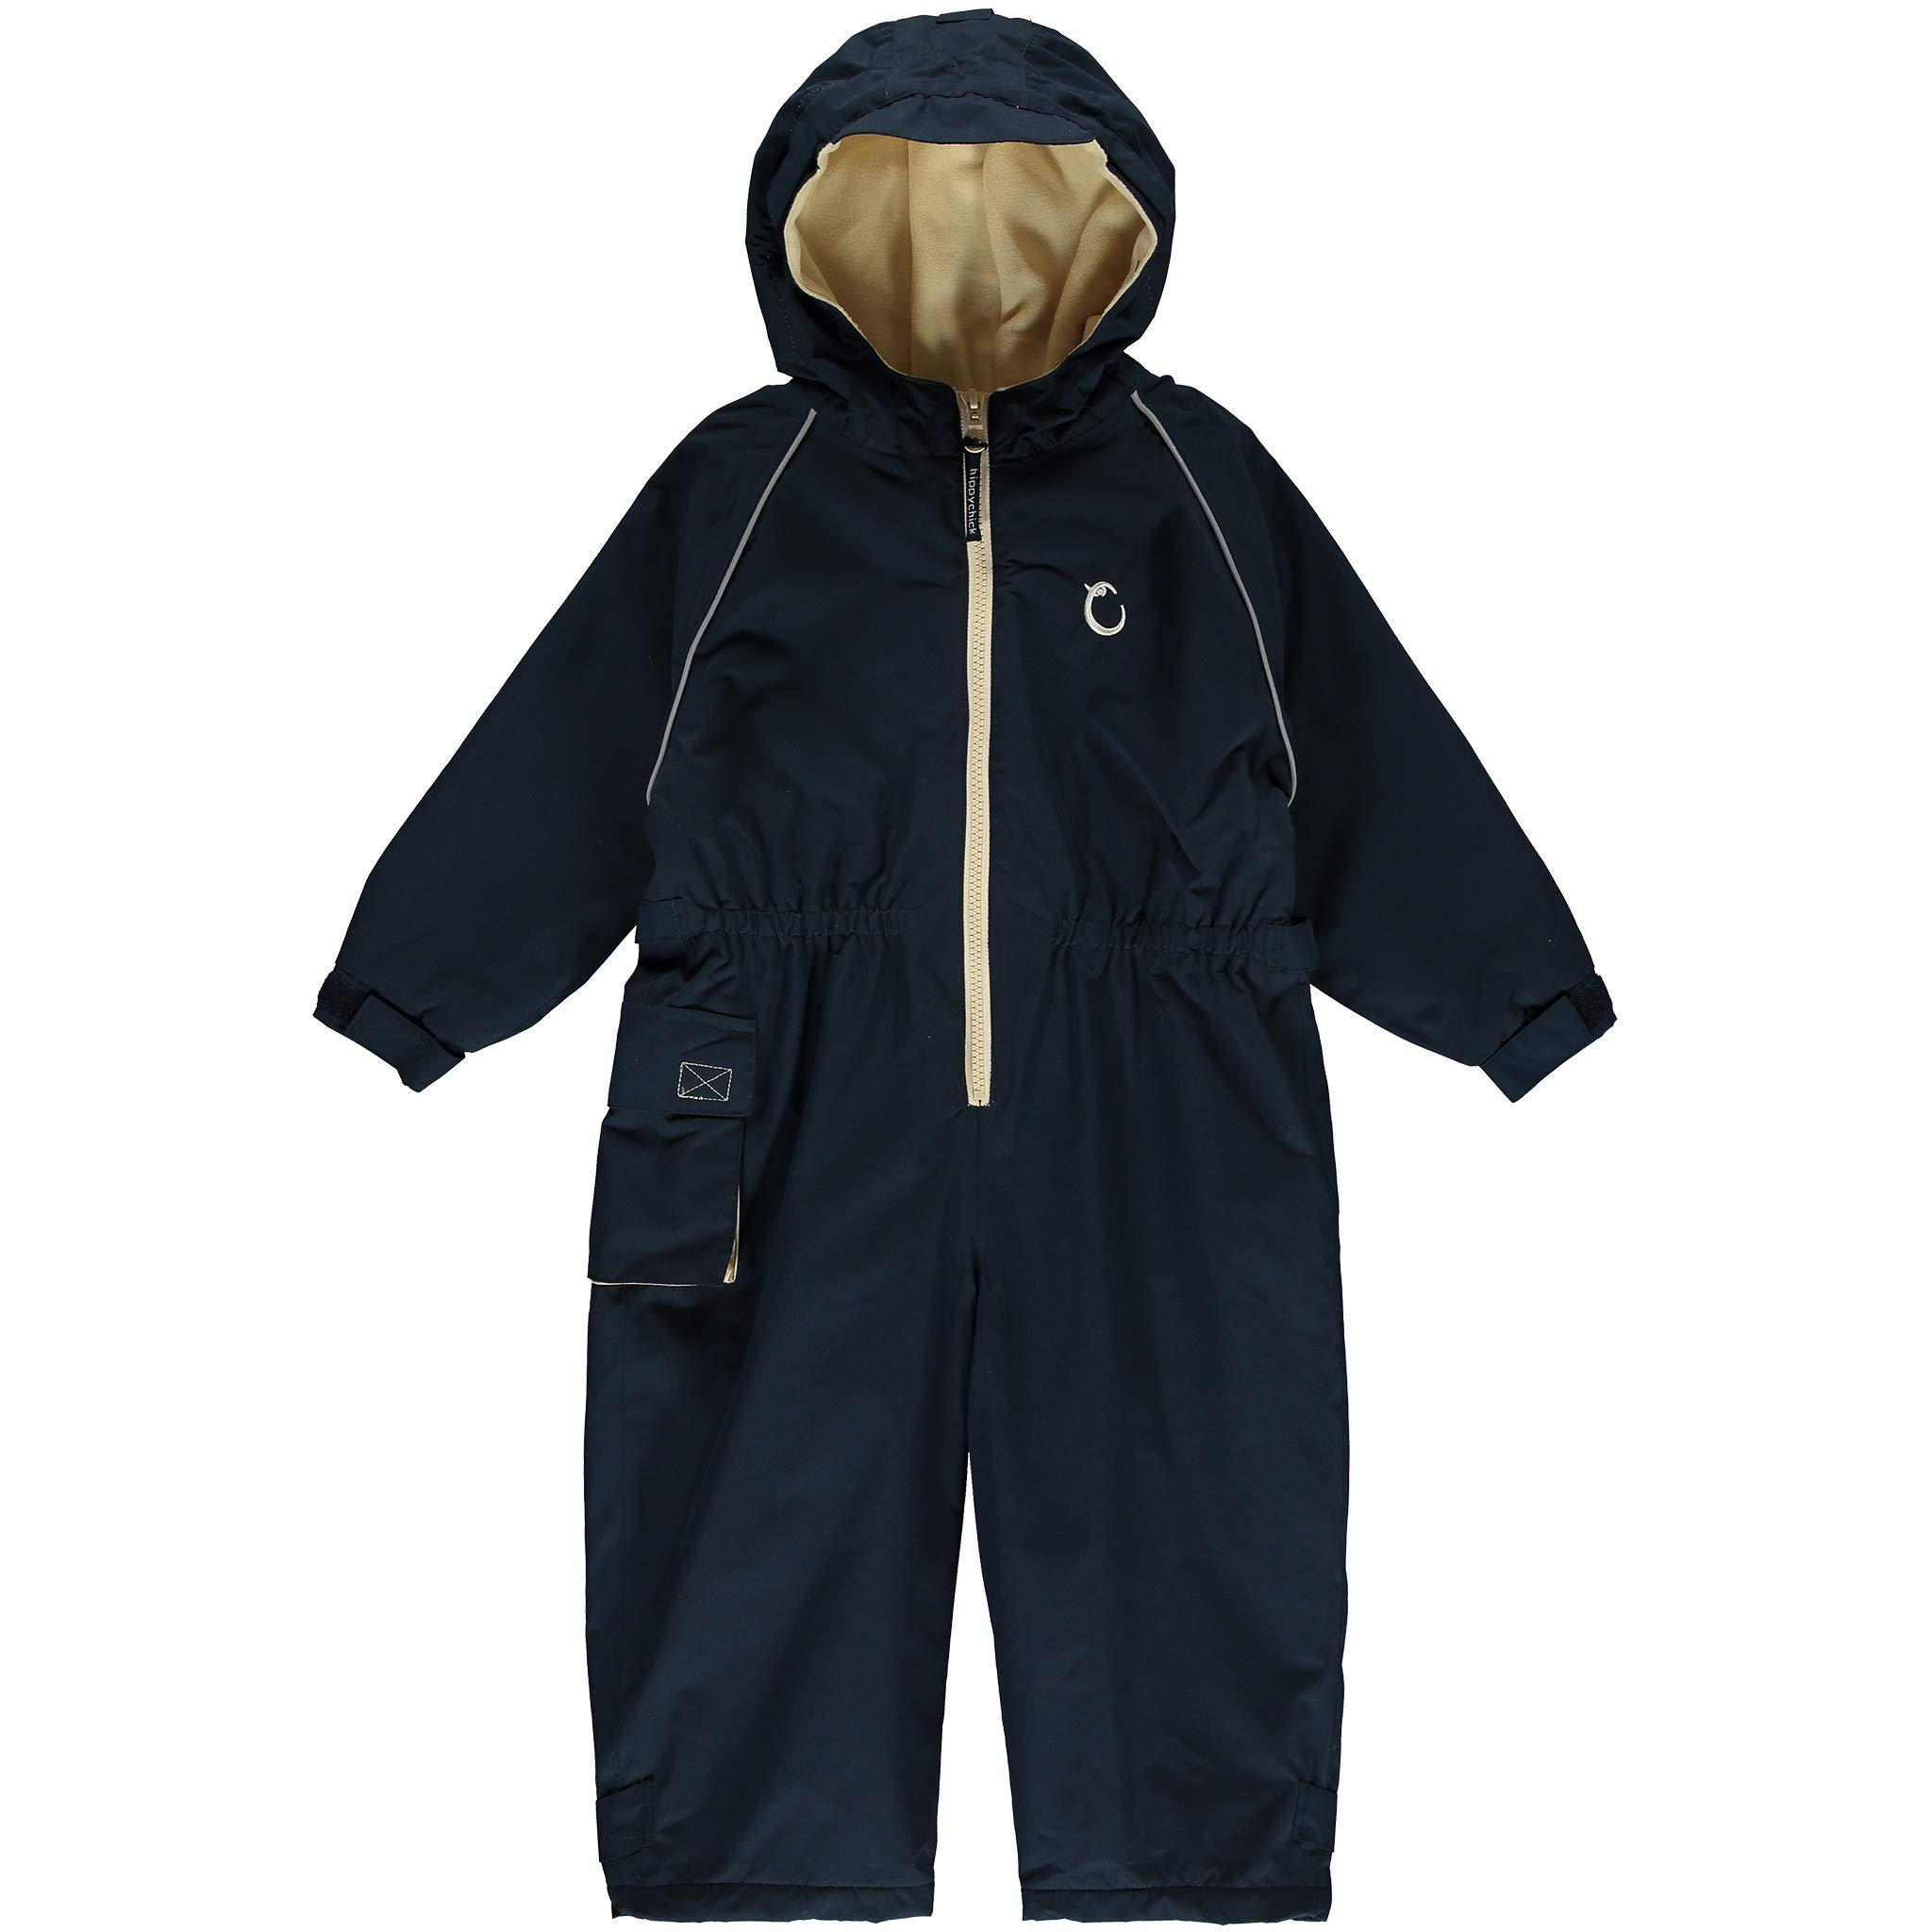 Hippychick Fleece Lined Waterproof Coverall One Piece Rain Suit - Midnight Blue 4-5yrs by Hippychick